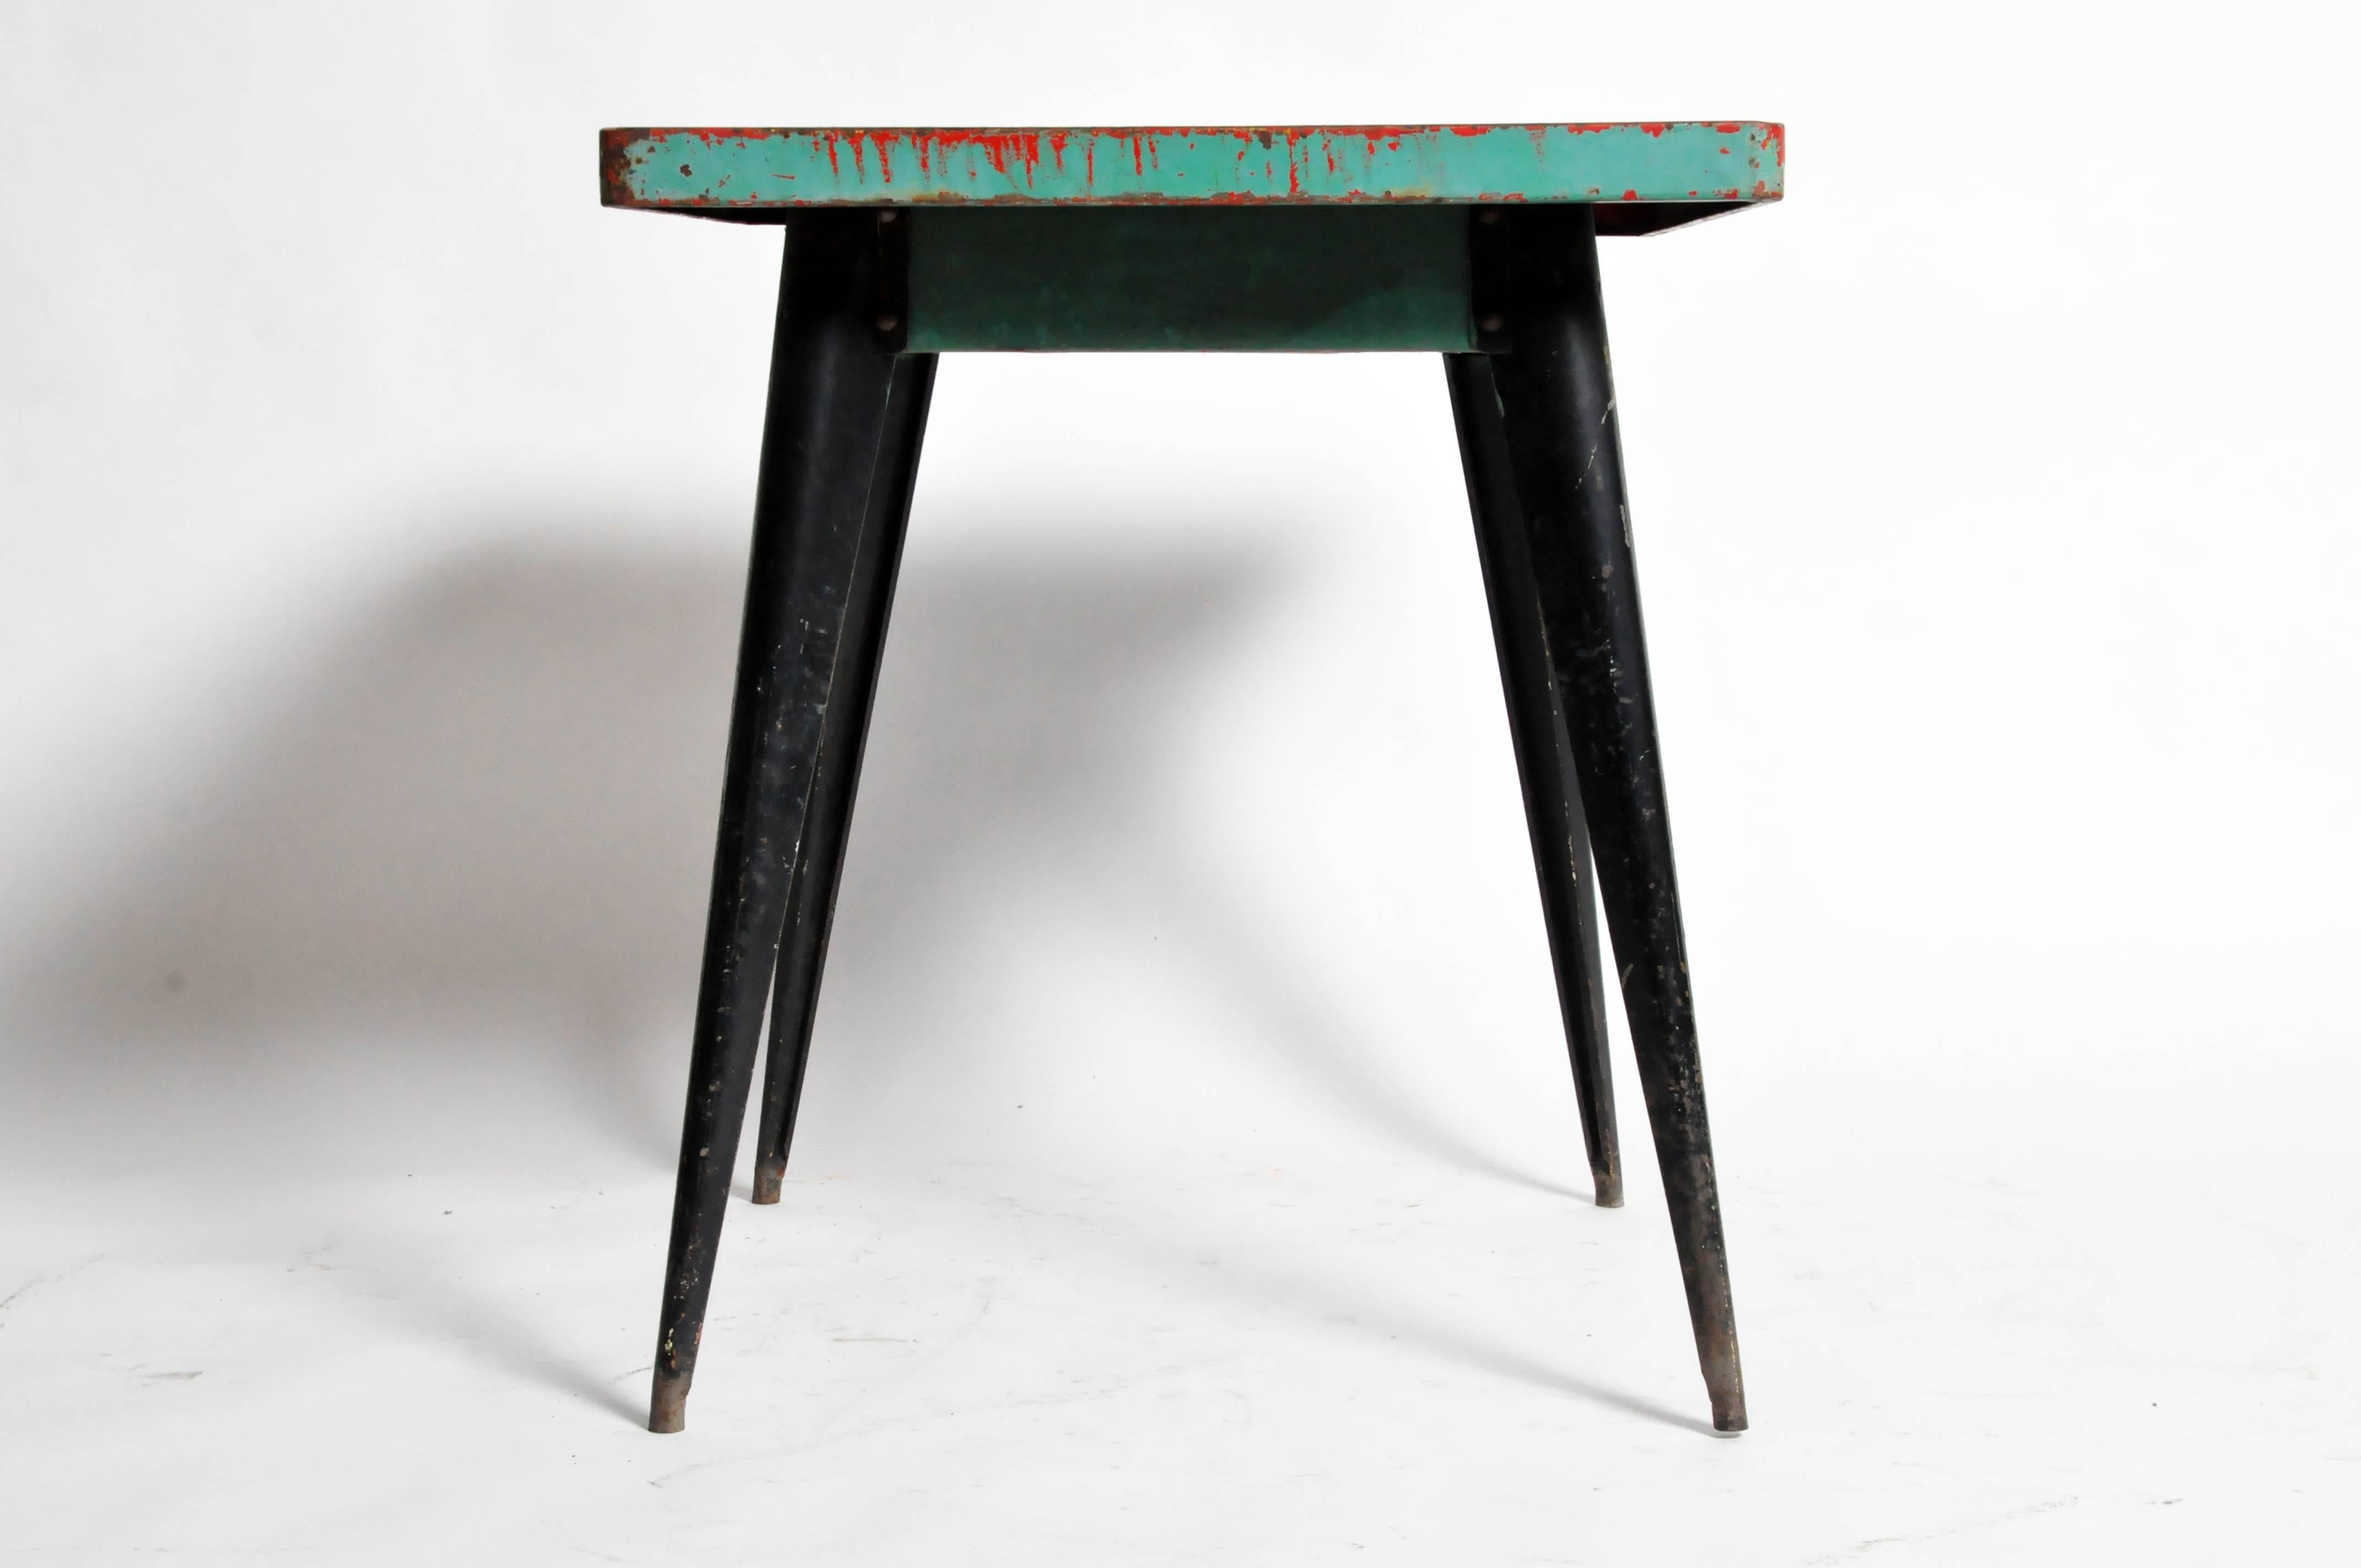 Mid Century Modern Green Metal Outdoor Cafe Table By Tolix For Sale 1